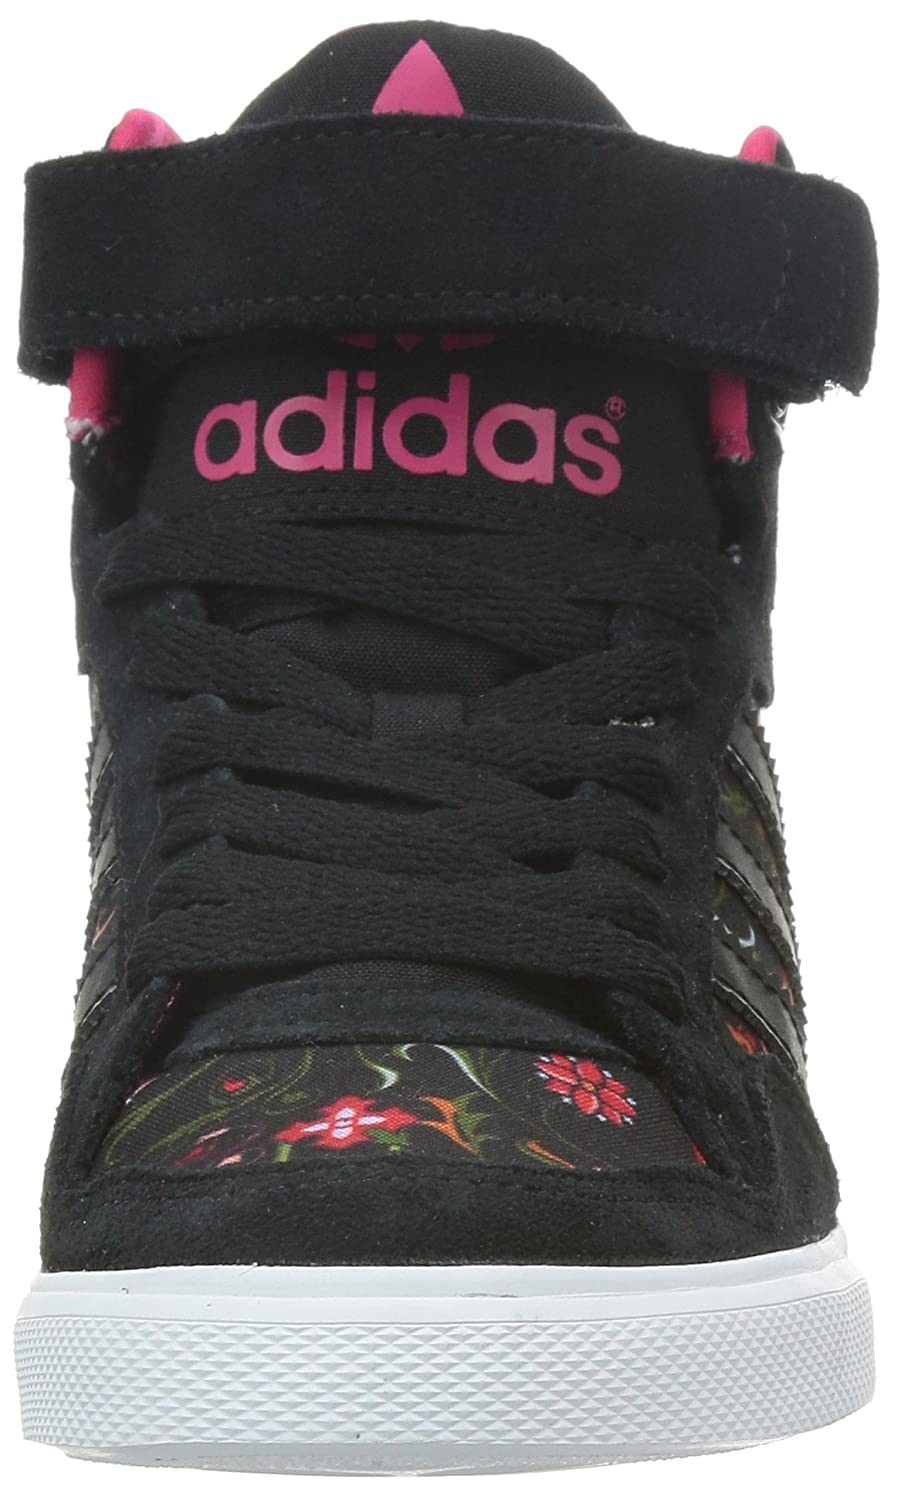 adidas Originals Womens Extaball W-1 Trainers: Amazon.co.uk: Shoes & Bags